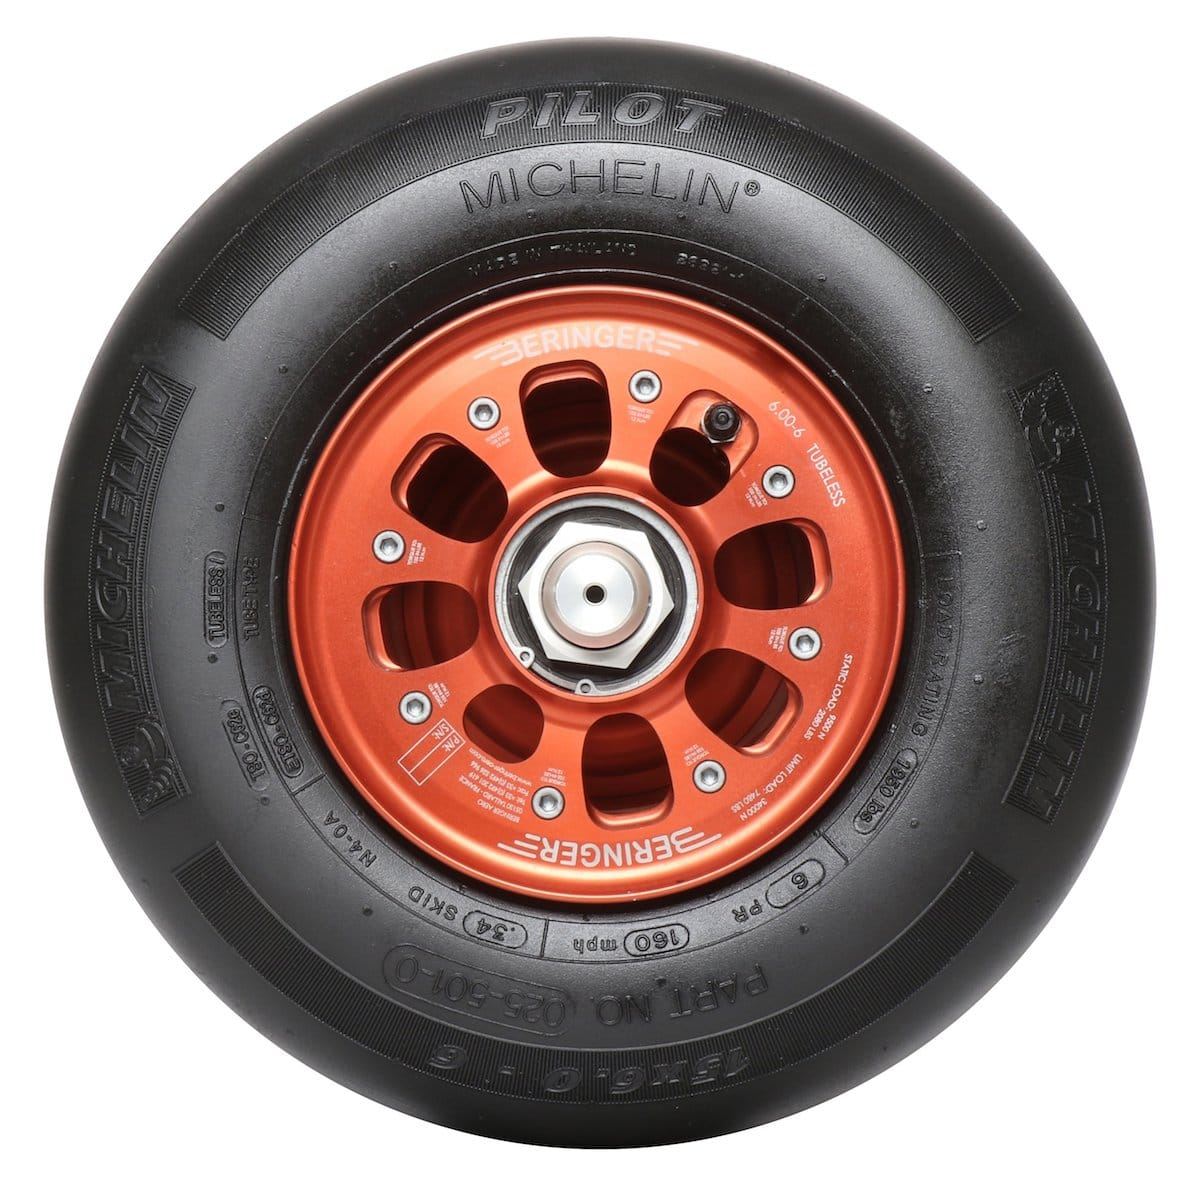 Michelin adds new sizes to Pilot tire line